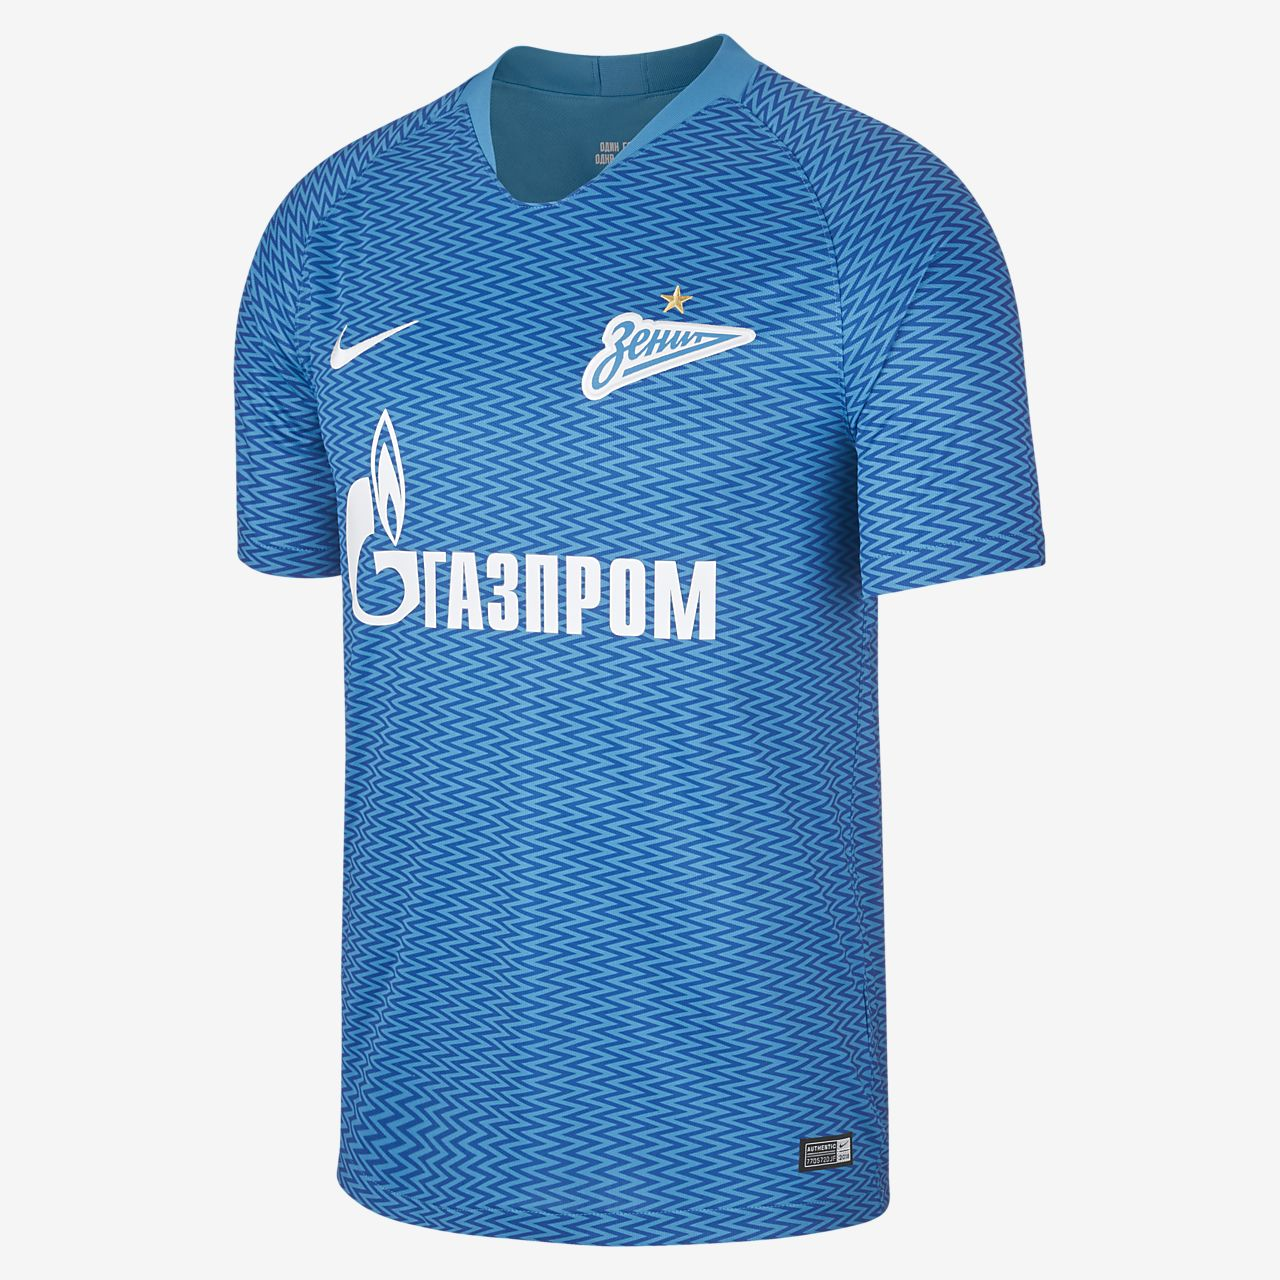 2018/19 FC Zenit Stadium Home Men's Football Shirt